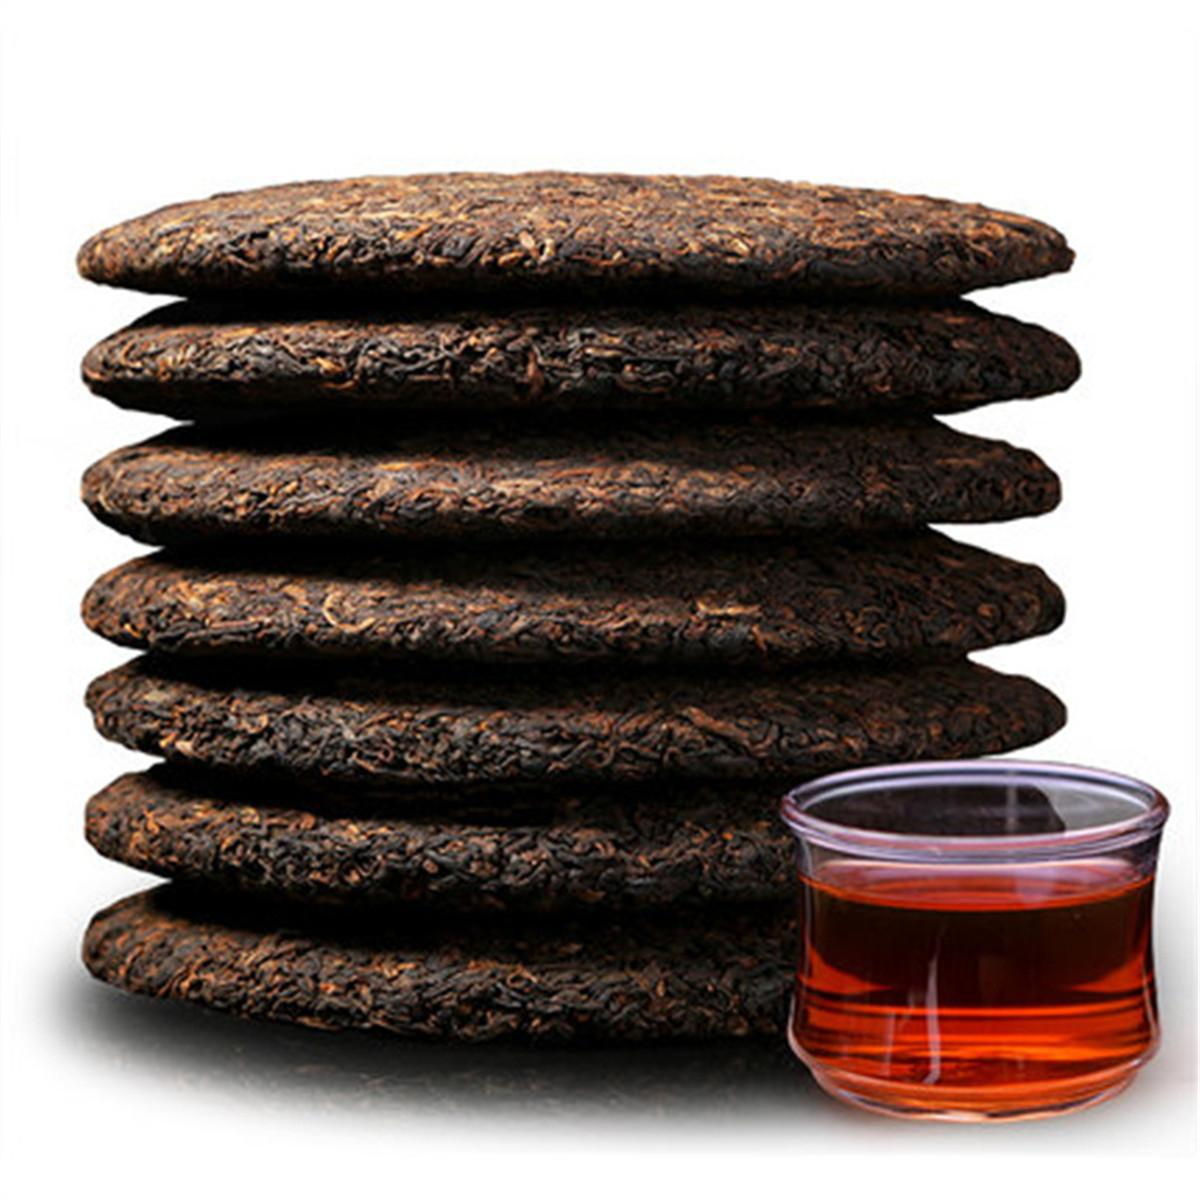 Preference 357g Ripe Puer Tea Yunnan Menghai spring Puer Tea Cake Organic Natural Pu'er Oldest Tree Cooked Puer Black Puerh Green Food